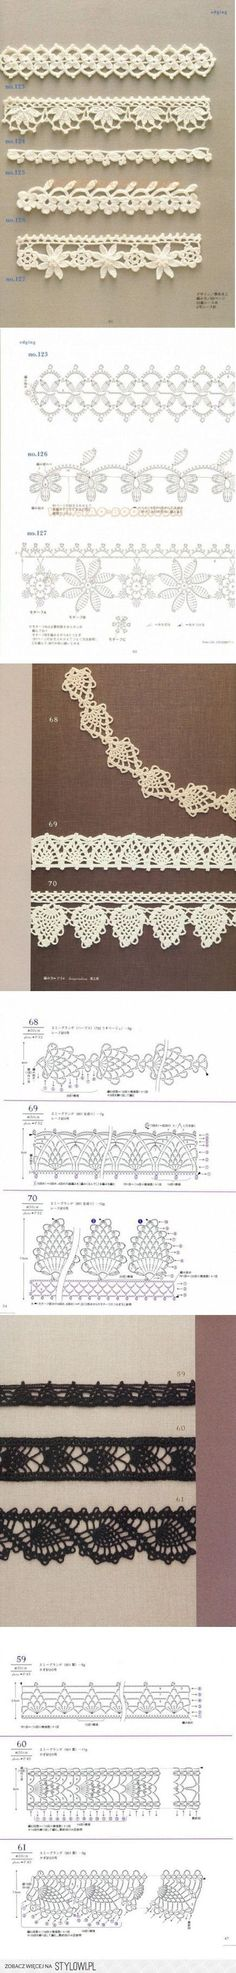 "Crochet Edgings [   ""Lace Crochet Edging with Chart Diagram Pattern"",   ""robótki na Stylowi."" ] #<br/> # #Crochet #Borders,<br/> # #Crochet #Edgings,<br/> # #Diy #Crochet,<br/> # #Crochet #Pattern,<br/> # #Crochet #Lace #Edging,<br/> # #Charts,<br/> # #Projects,<br/> # #Knitting,<br/> # #Sewing<br/>"